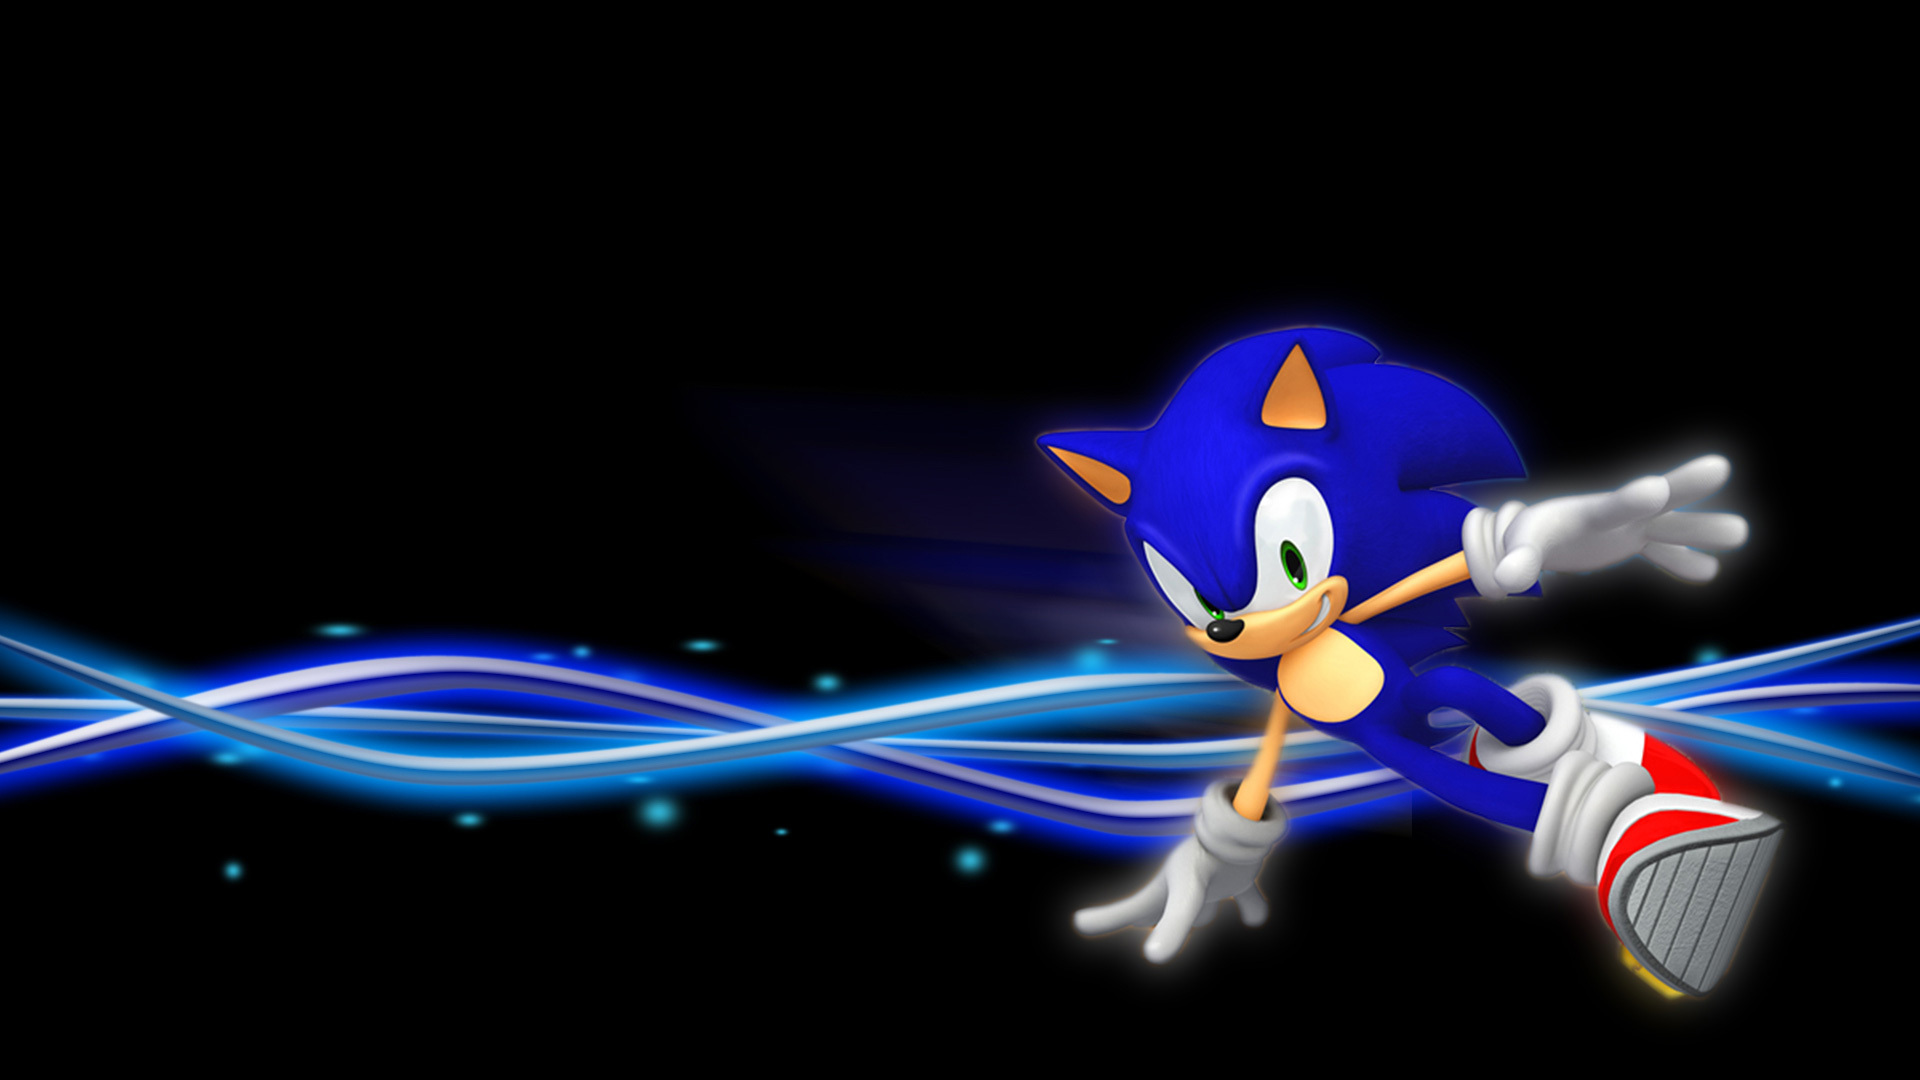 Cool-Sonic-hedgehog-awesome-title-cool-spots-photos-wallpaper-wp3604248